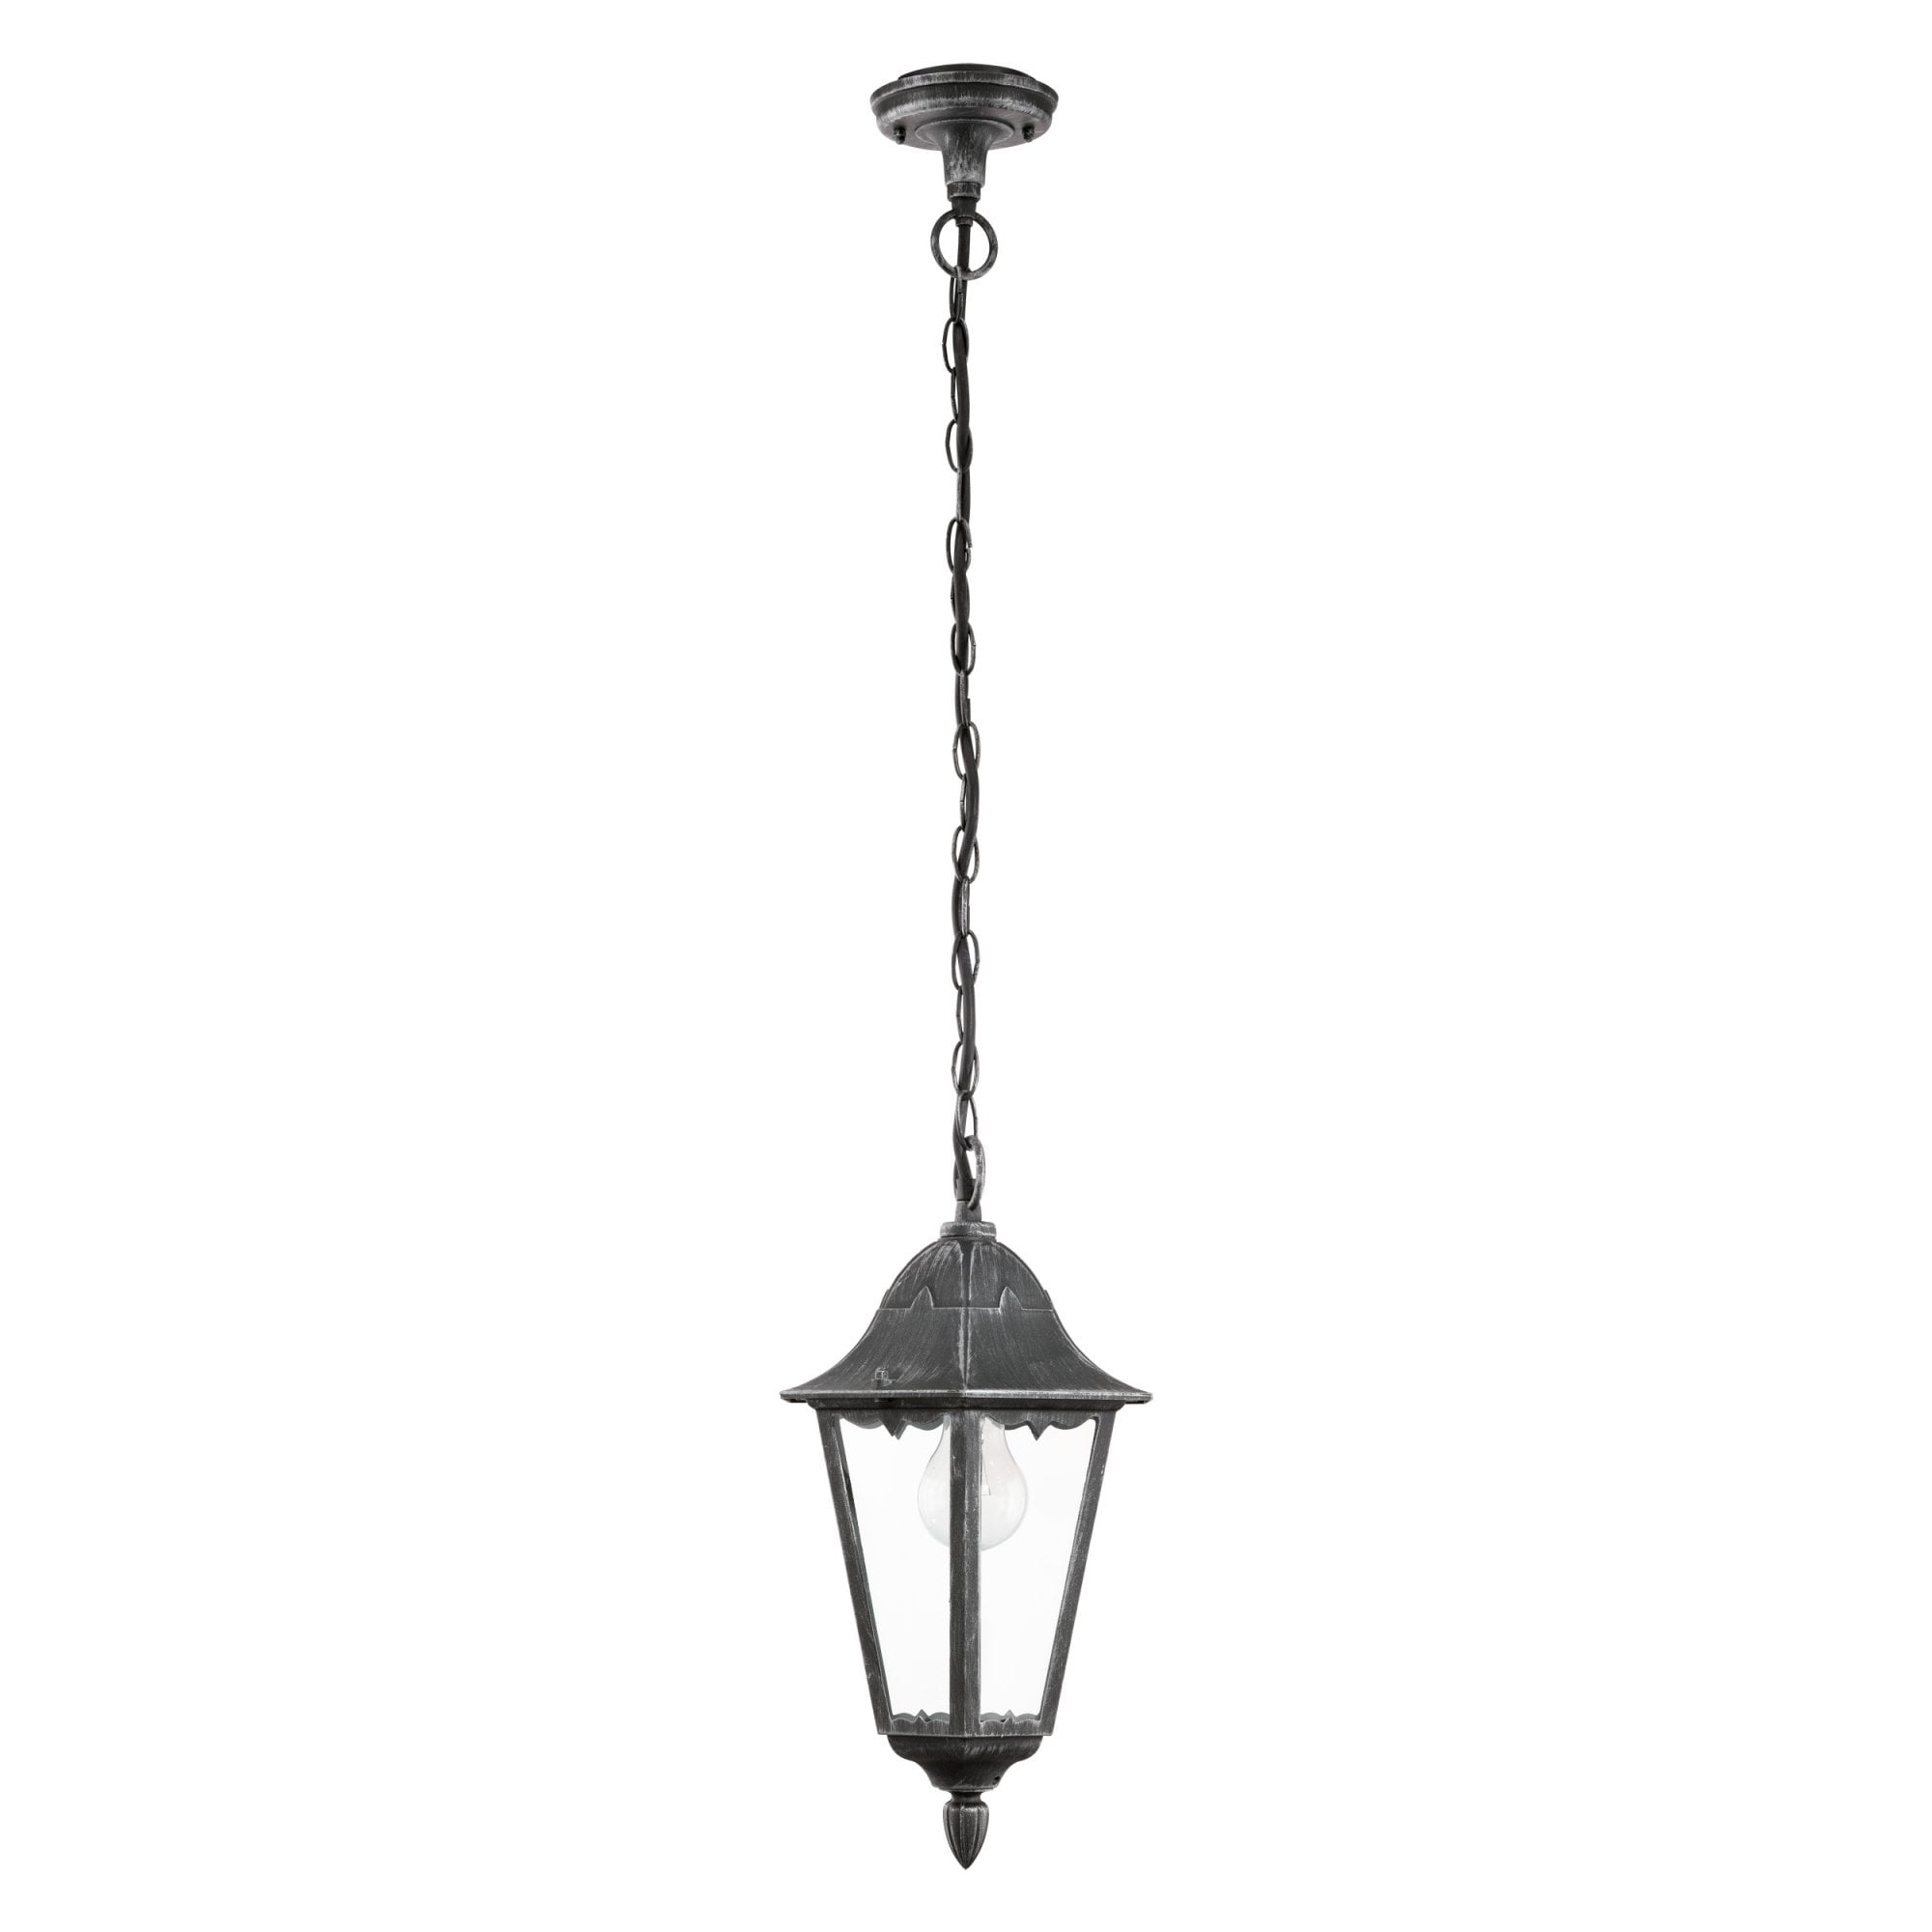 93455 Navedo Outdoor Pendant Light Black Silver Patina